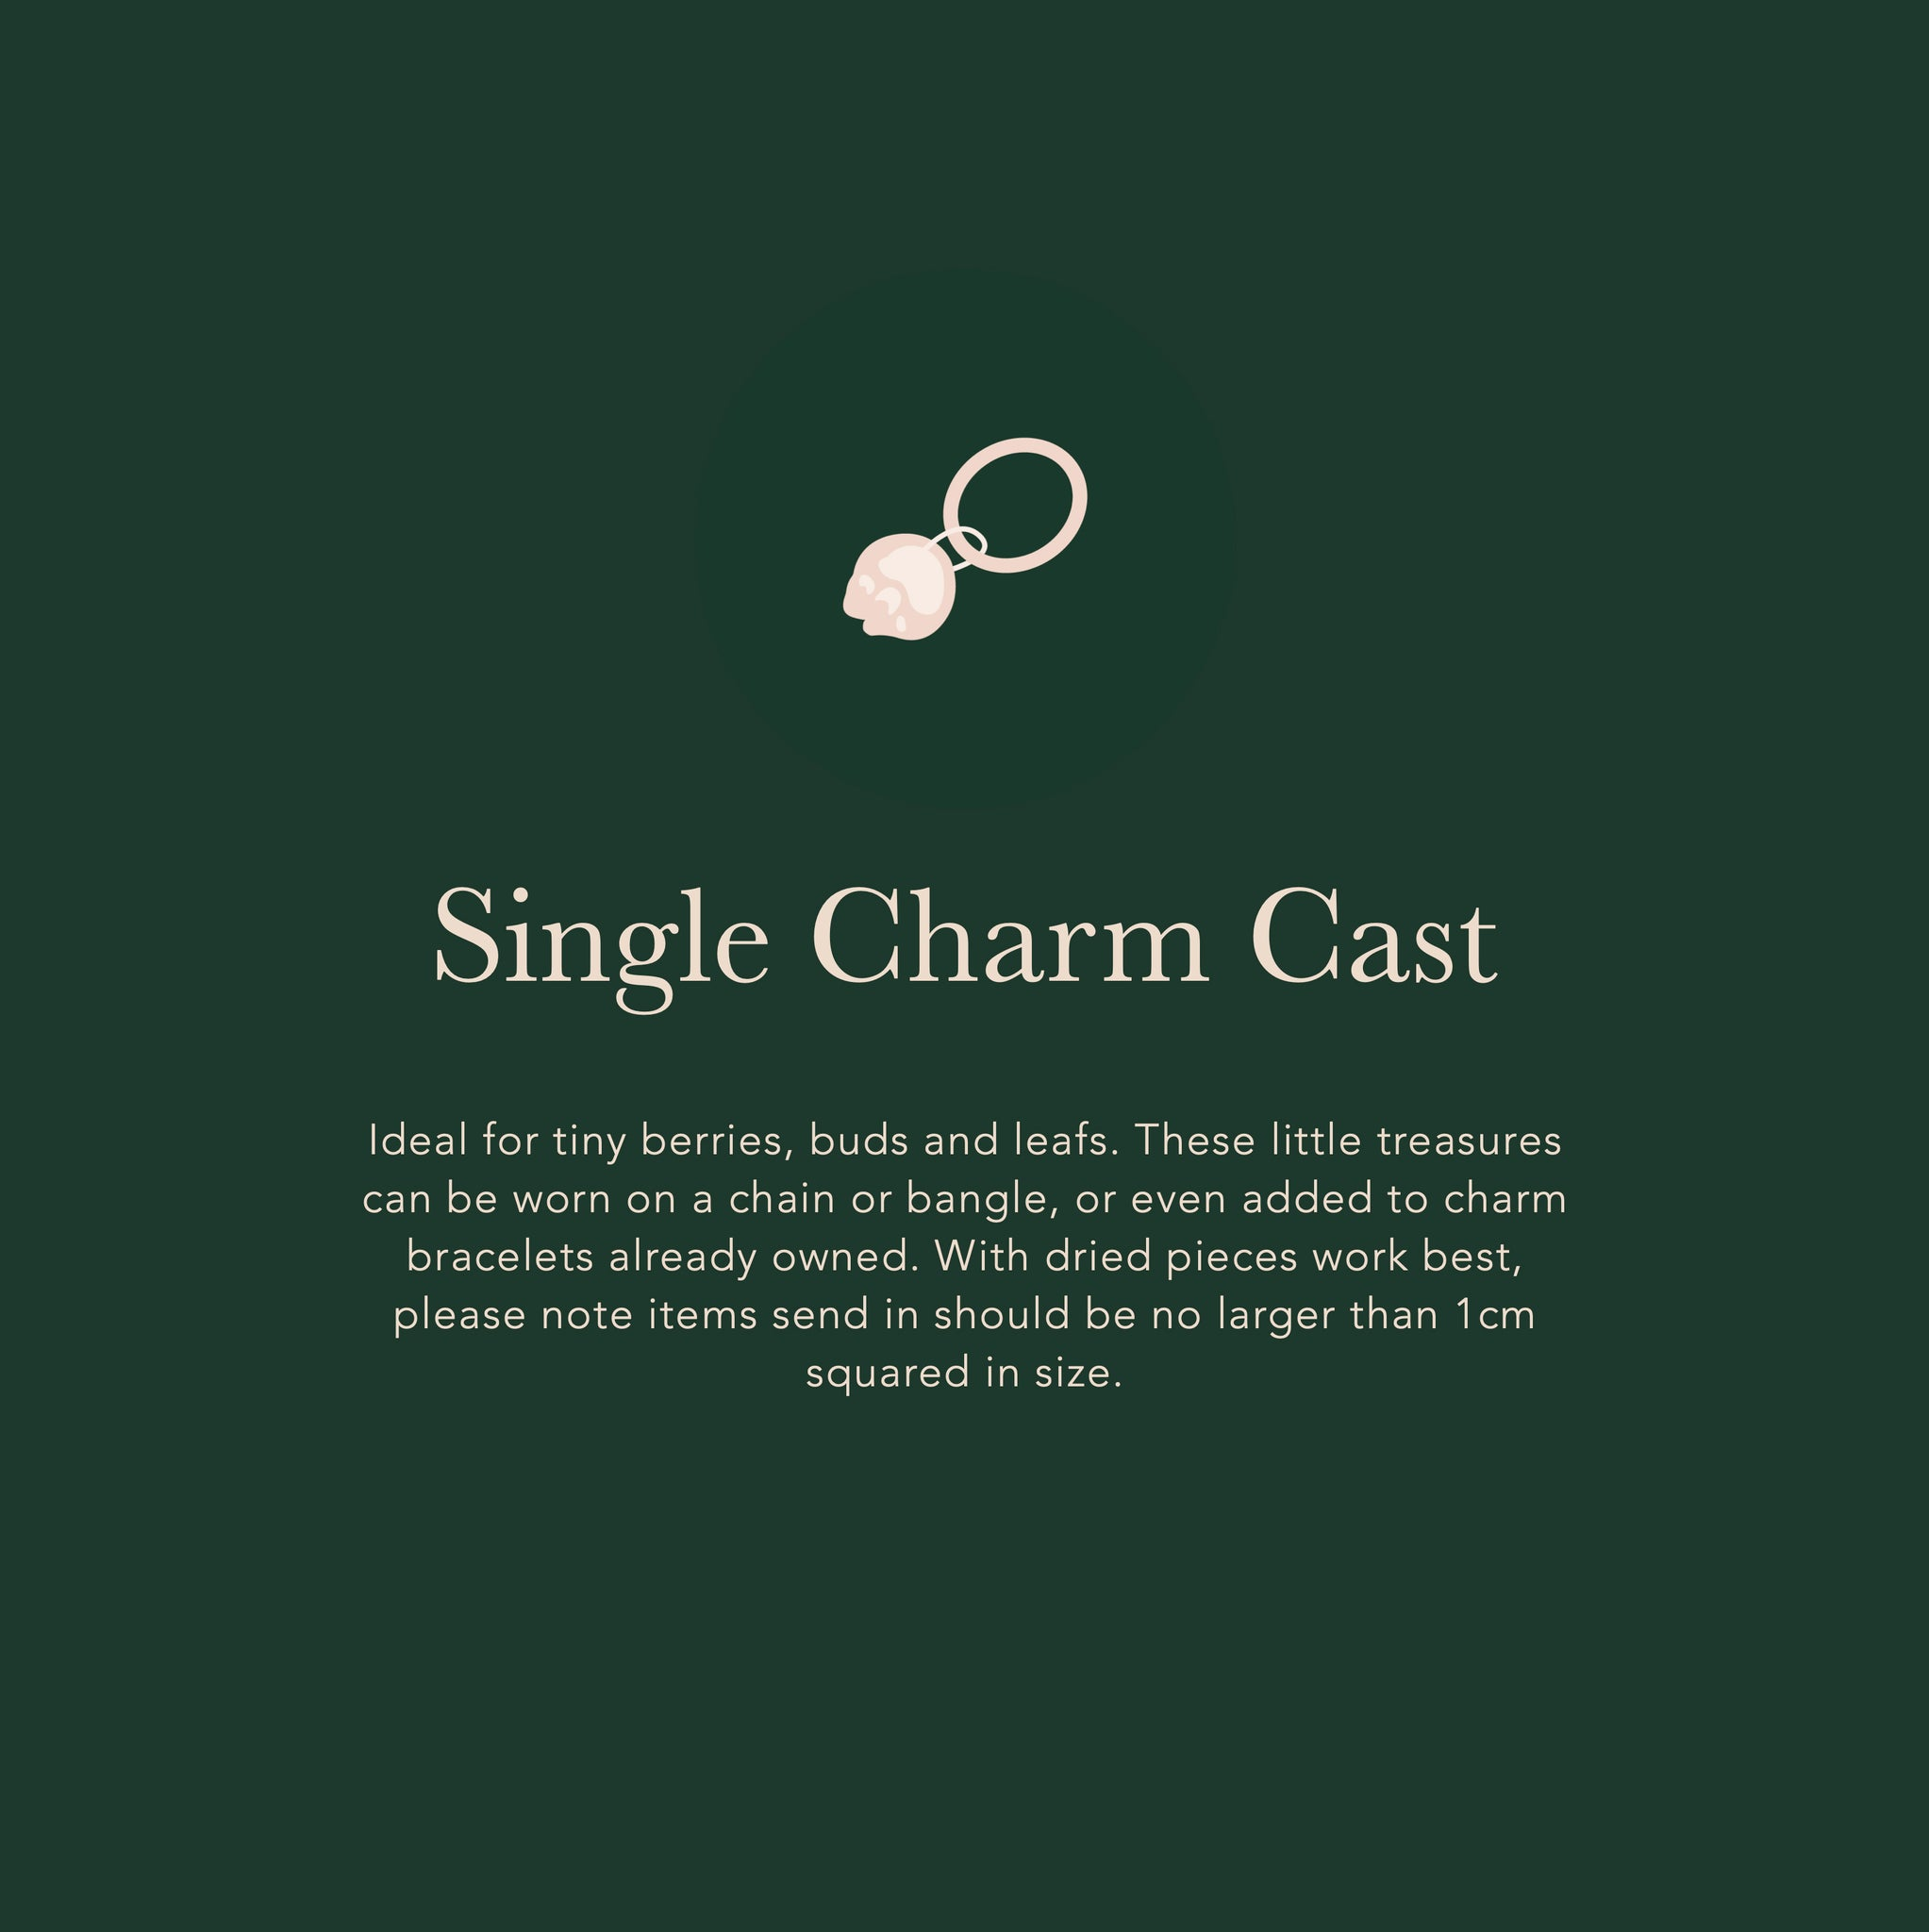 Single Charm Cast - Create